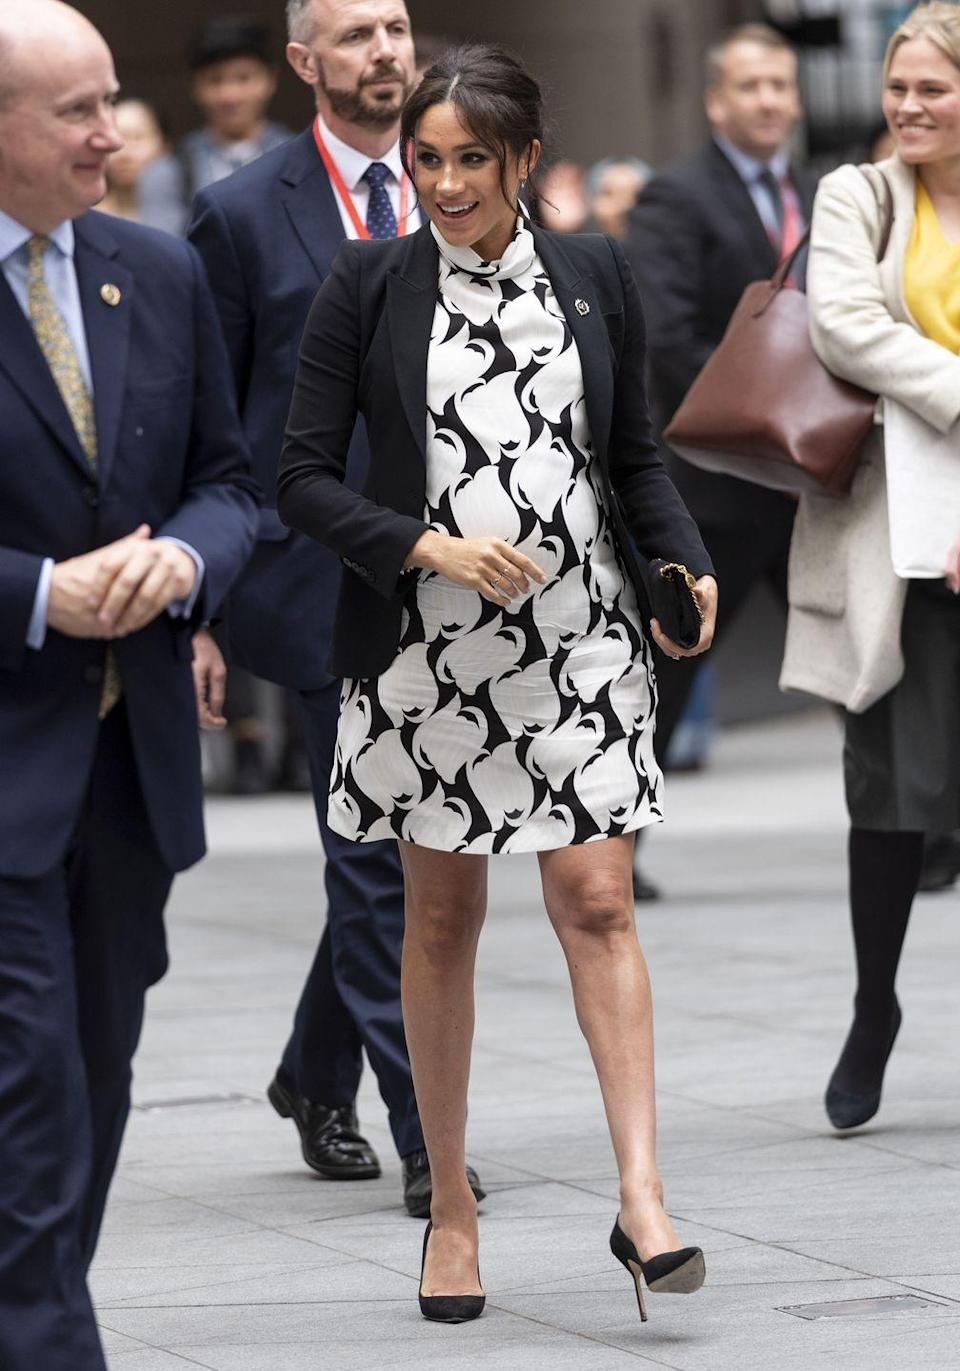 """<p>Meghan Markle arrived at an International Women's Day panel organized by the Queen's Commonwealth Trust, <a href=""""https://www.townandcountrymag.com/society/tradition/a26761685/meghan-markle-vice-president-queens-commonwealth-trust/"""" rel=""""nofollow noopener"""" target=""""_blank"""" data-ylk=""""slk:of which she was just named Vice President"""" class=""""link rapid-noclick-resp"""">of which she was just named Vice President</a>, in a printed black and white dress, black blazer, <a href=""""https://go.redirectingat.com?id=74968X1596630&url=https%3A%2F%2Fshop.nordstrom.com%2Fs%2Fstella-mccartney-shaggy-deer-faux-leather-crossbody-bag%2F4782119&sref=https%3A%2F%2Fwww.townandcountrymag.com%2Fstyle%2Ffashion-trends%2Fg3272%2Fmeghan-markle-preppy-style%2F"""" rel=""""nofollow noopener"""" target=""""_blank"""" data-ylk=""""slk:Stella McCartney clutch"""" class=""""link rapid-noclick-resp"""">Stella McCartney clutch</a> and <a href=""""https://go.redirectingat.com?id=74968X1596630&url=https%3A%2F%2Fshop.nordstrom.com%2Fs%2Fmanolo-blahnik-bb-pointy-toe-pump-women%2F3209276&sref=https%3A%2F%2Fwww.townandcountrymag.com%2Fstyle%2Ffashion-trends%2Fg3272%2Fmeghan-markle-preppy-style%2F"""" rel=""""nofollow noopener"""" target=""""_blank"""" data-ylk=""""slk:Manolo Blahnik heels"""" class=""""link rapid-noclick-resp"""">Manolo Blahnik heels</a>. </p><p><a class=""""link rapid-noclick-resp"""" href=""""https://go.redirectingat.com?id=74968X1596630&url=https%3A%2F%2Fshop.nordstrom.com%2Fs%2Fstella-mccartney-shaggy-deer-faux-leather-crossbody-bag%2F4782119&sref=https%3A%2F%2Fwww.townandcountrymag.com%2Fstyle%2Ffashion-trends%2Fg3272%2Fmeghan-markle-preppy-style%2F"""" rel=""""nofollow noopener"""" target=""""_blank"""" data-ylk=""""slk:SHOP NOW"""">SHOP NOW</a> <em>Stella McCartney Faux Leather Clutch, $875</em></p><p><a class=""""link rapid-noclick-resp"""" href=""""https://go.redirectingat.com?id=74968X1596630&url=https%3A%2F%2Fwww.saksfifthavenue.com%2Fmanolo-blahnik-bb-105-suede-point-toe-pumps%2Fproduct%2F0452430337261&sref=https%3A%2F%2Fwww.townandcountrymag.com%2Fstyle%2Ffashion-trends%2Fg32"""